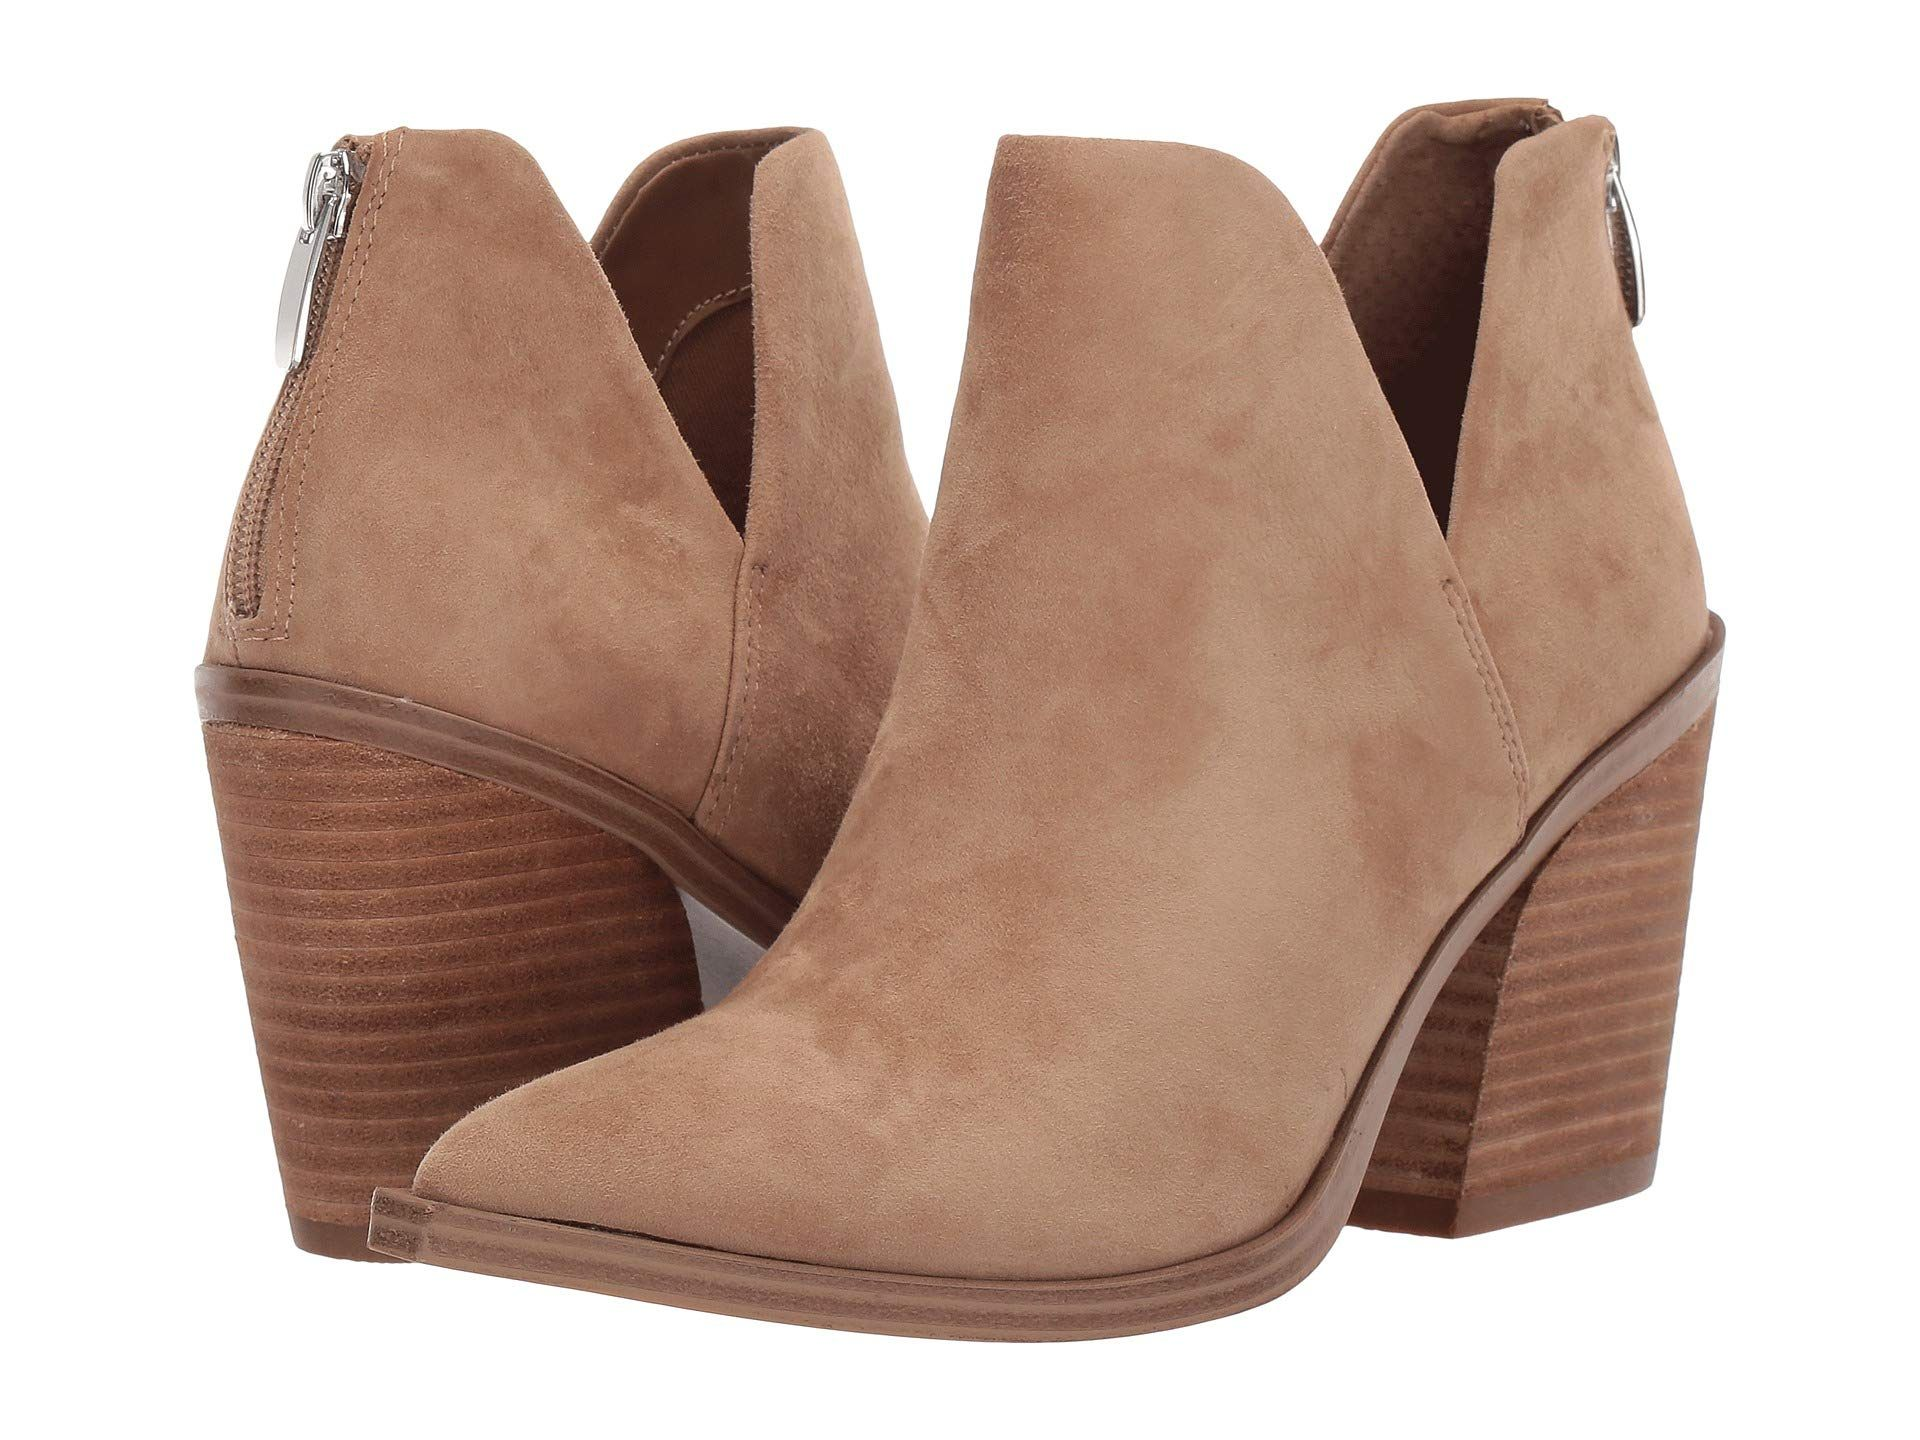 Affordable Fall Ankle Boots and Booties